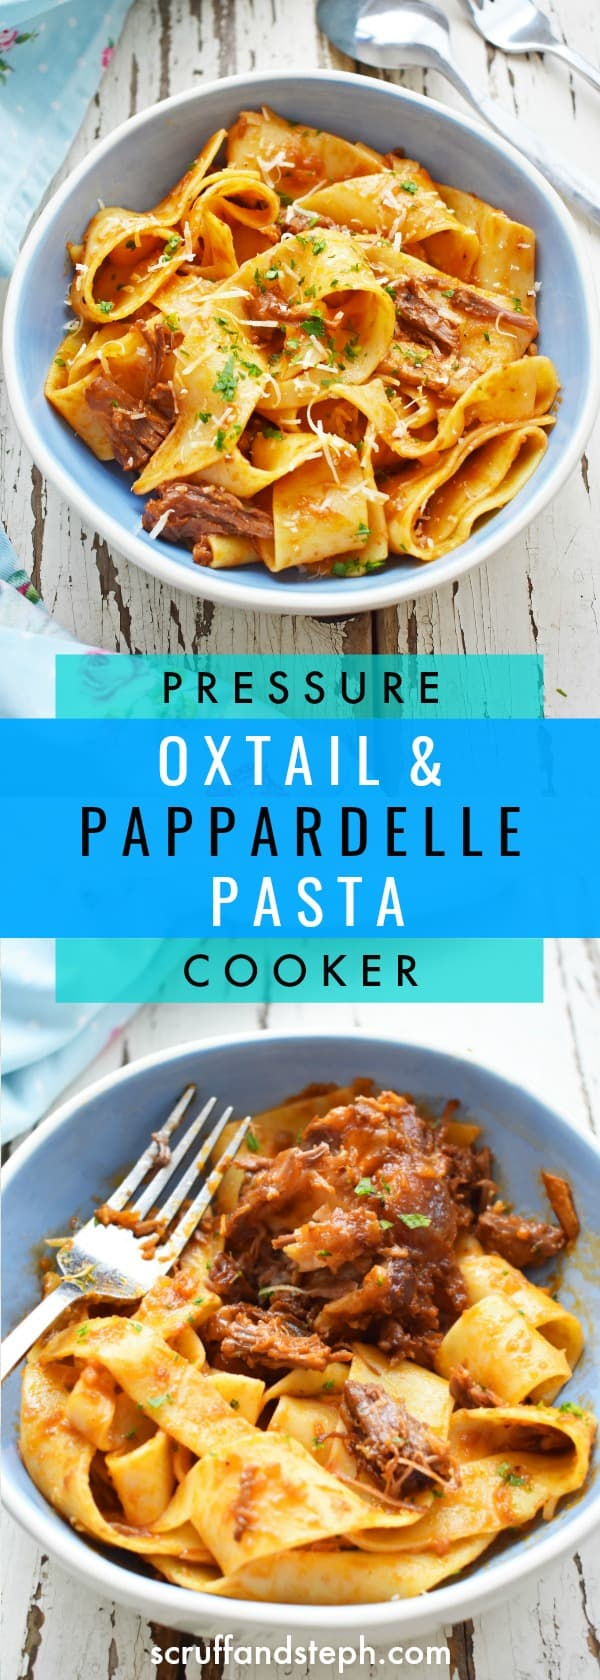 Pressure Cooker Oxtail in Tomato Sauce and Pappardelle Pasta